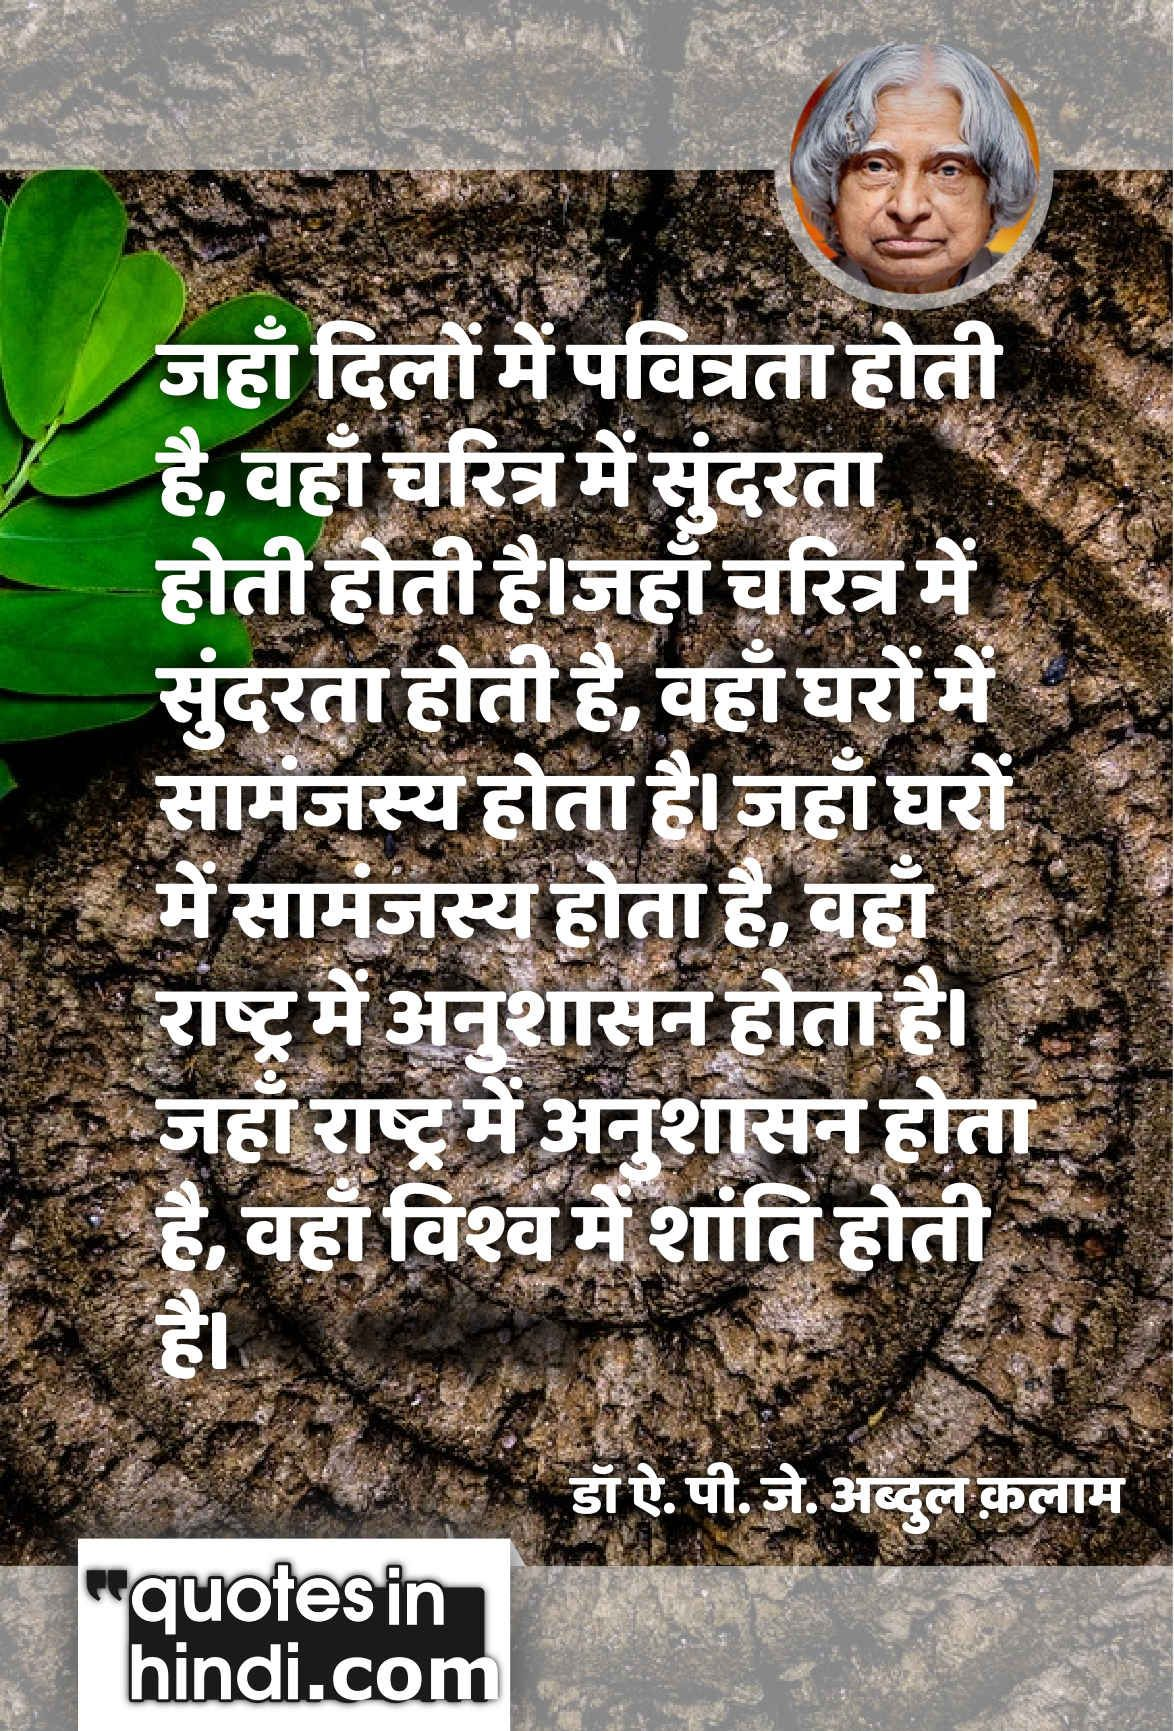 Abdul Kalam Motivational Quotes in Hindi (With images